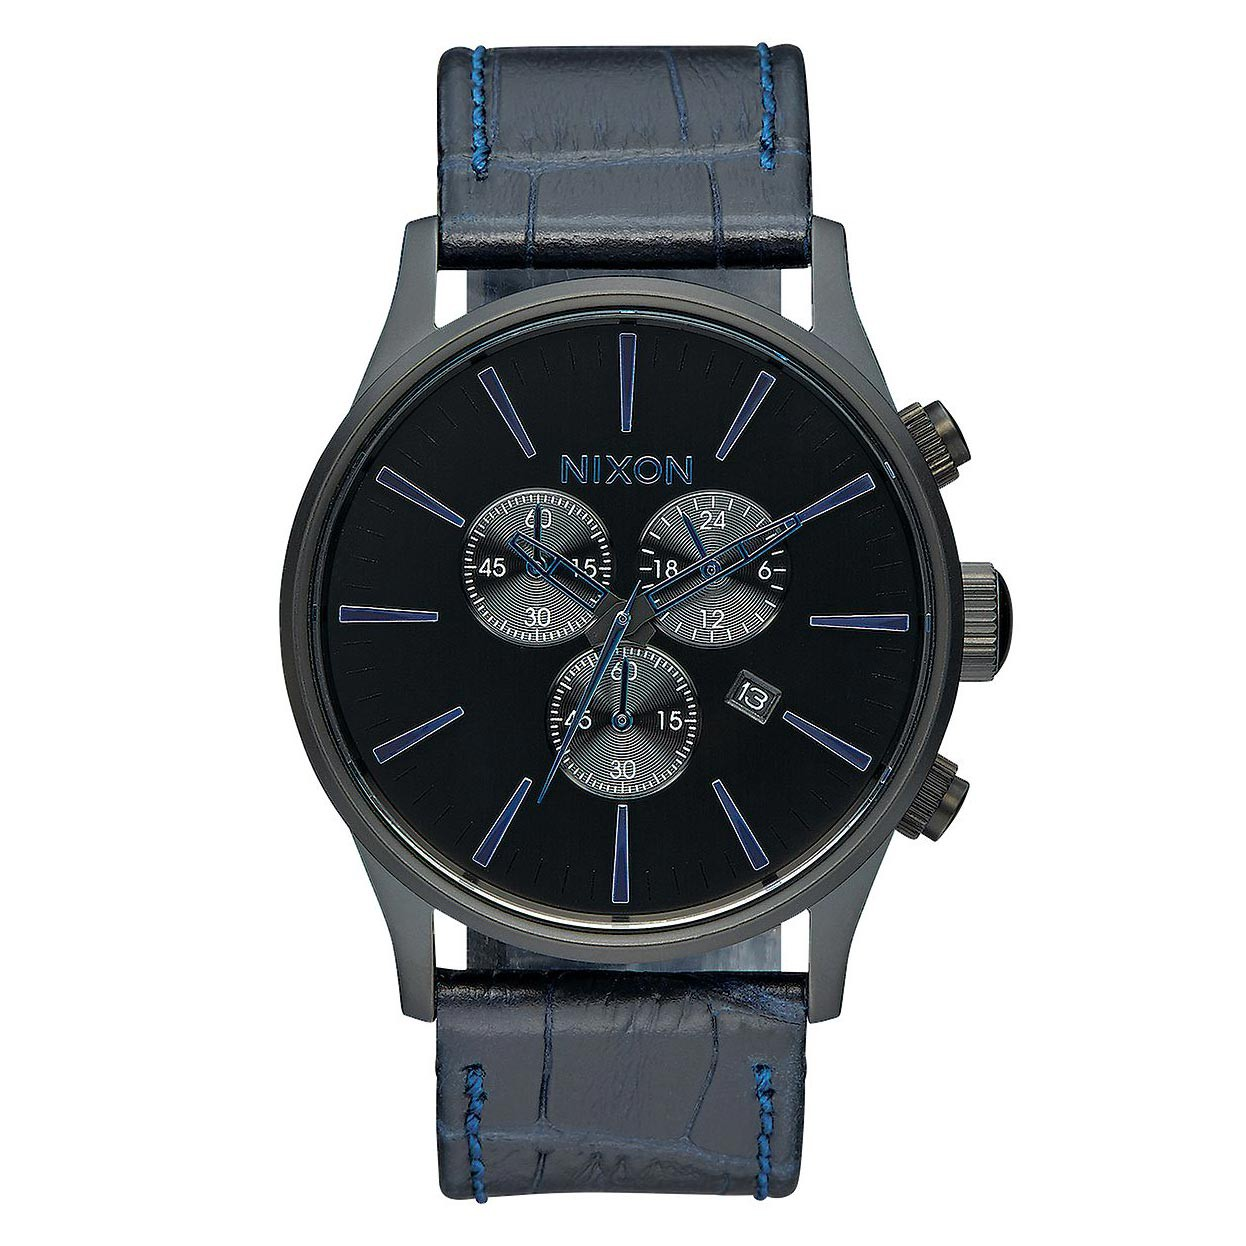 Hodinky Nixon Sentry Chrono Leather navy gator